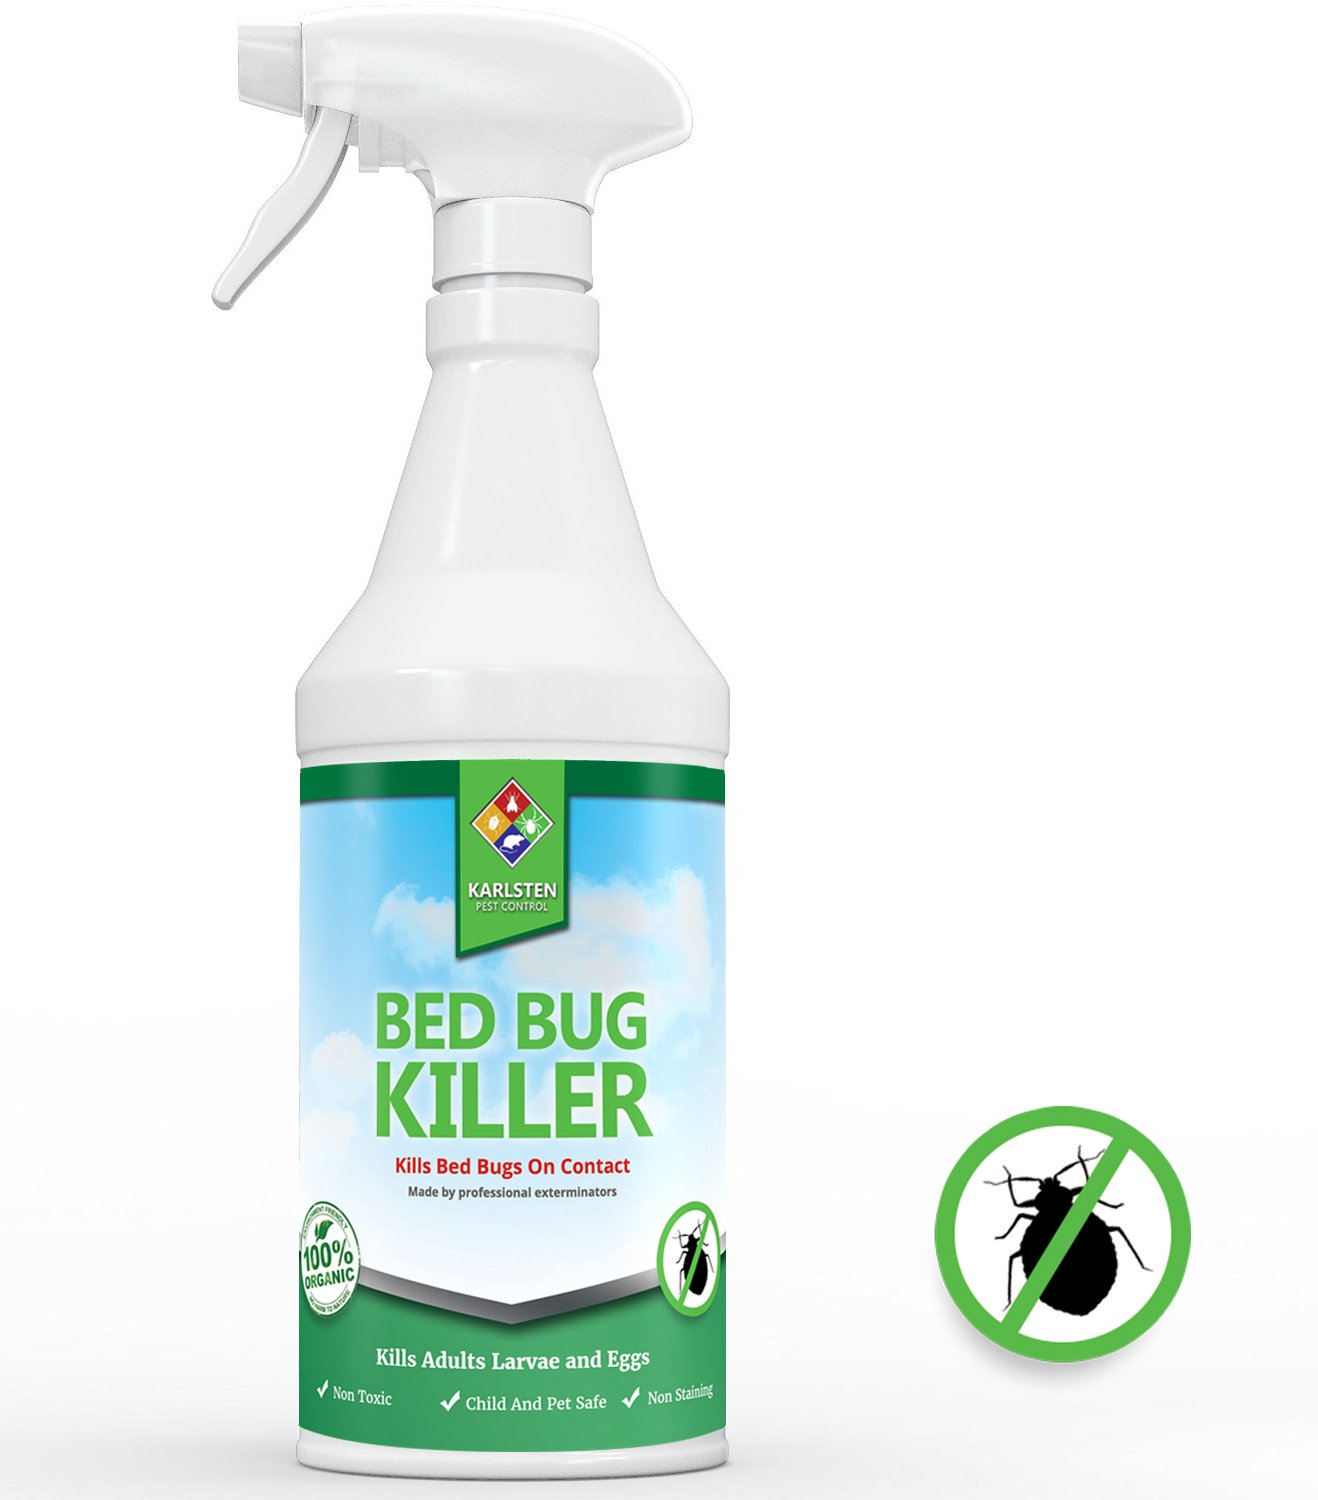 Karlsten Bed Bug Killer Pest Control Bugs Spray Mosquito Repellent Circuitbest Repellentindoor Powerful Natural Organic Treatment Kills Eliminates And Prevents Bedbugs 16 Oz Garden